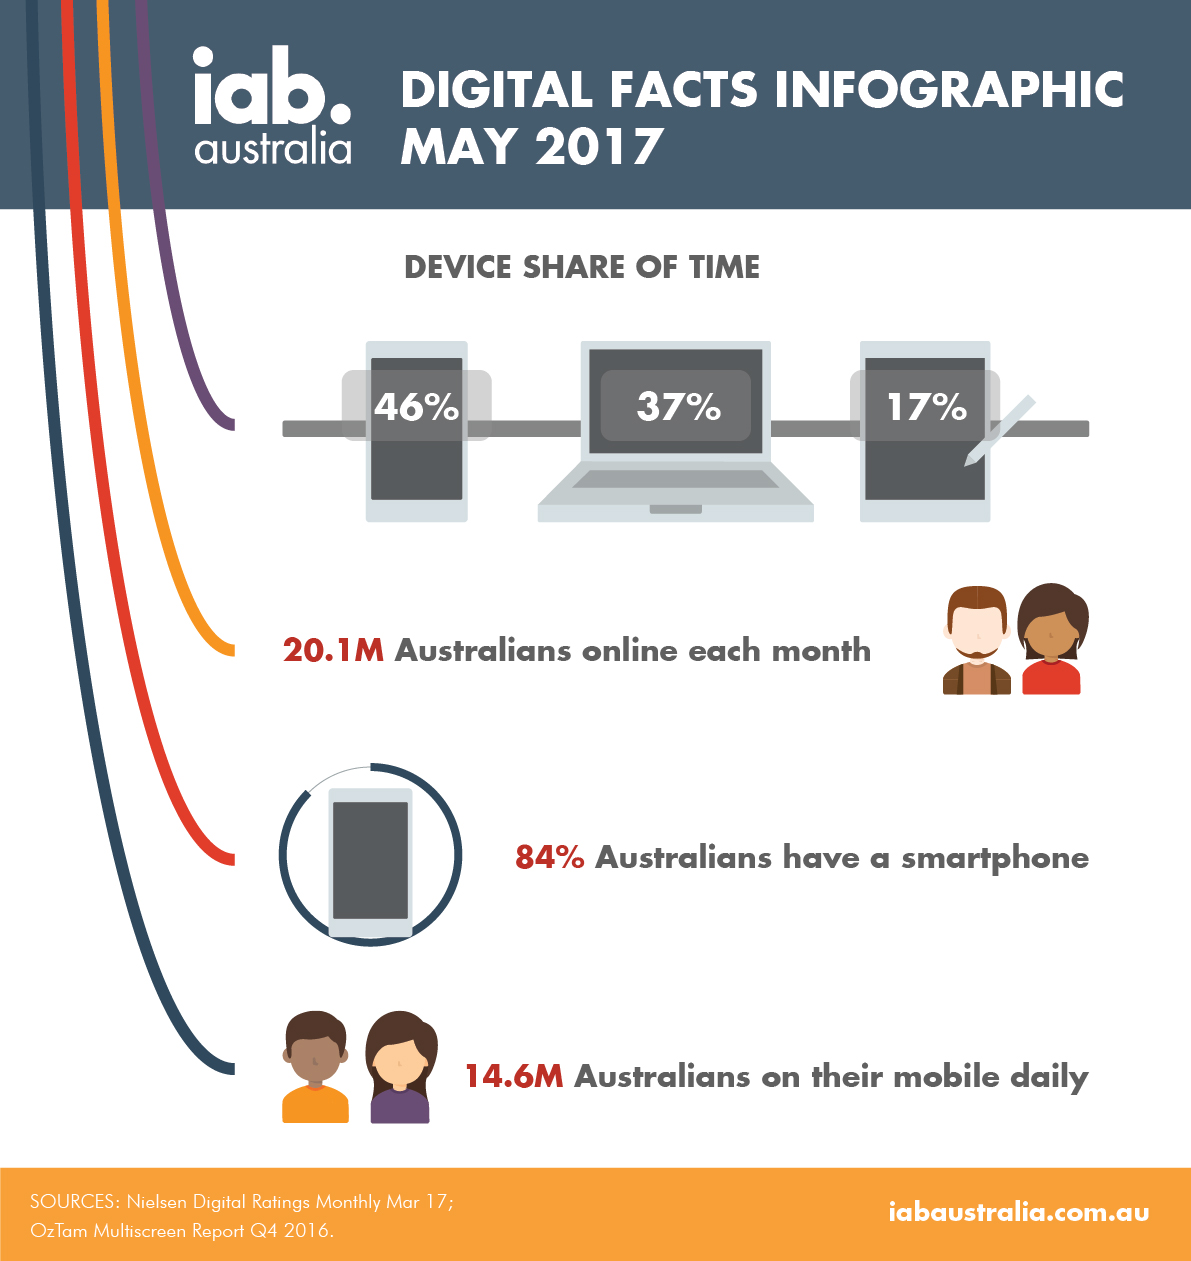 IAB Digital Fact Infographic May 2017